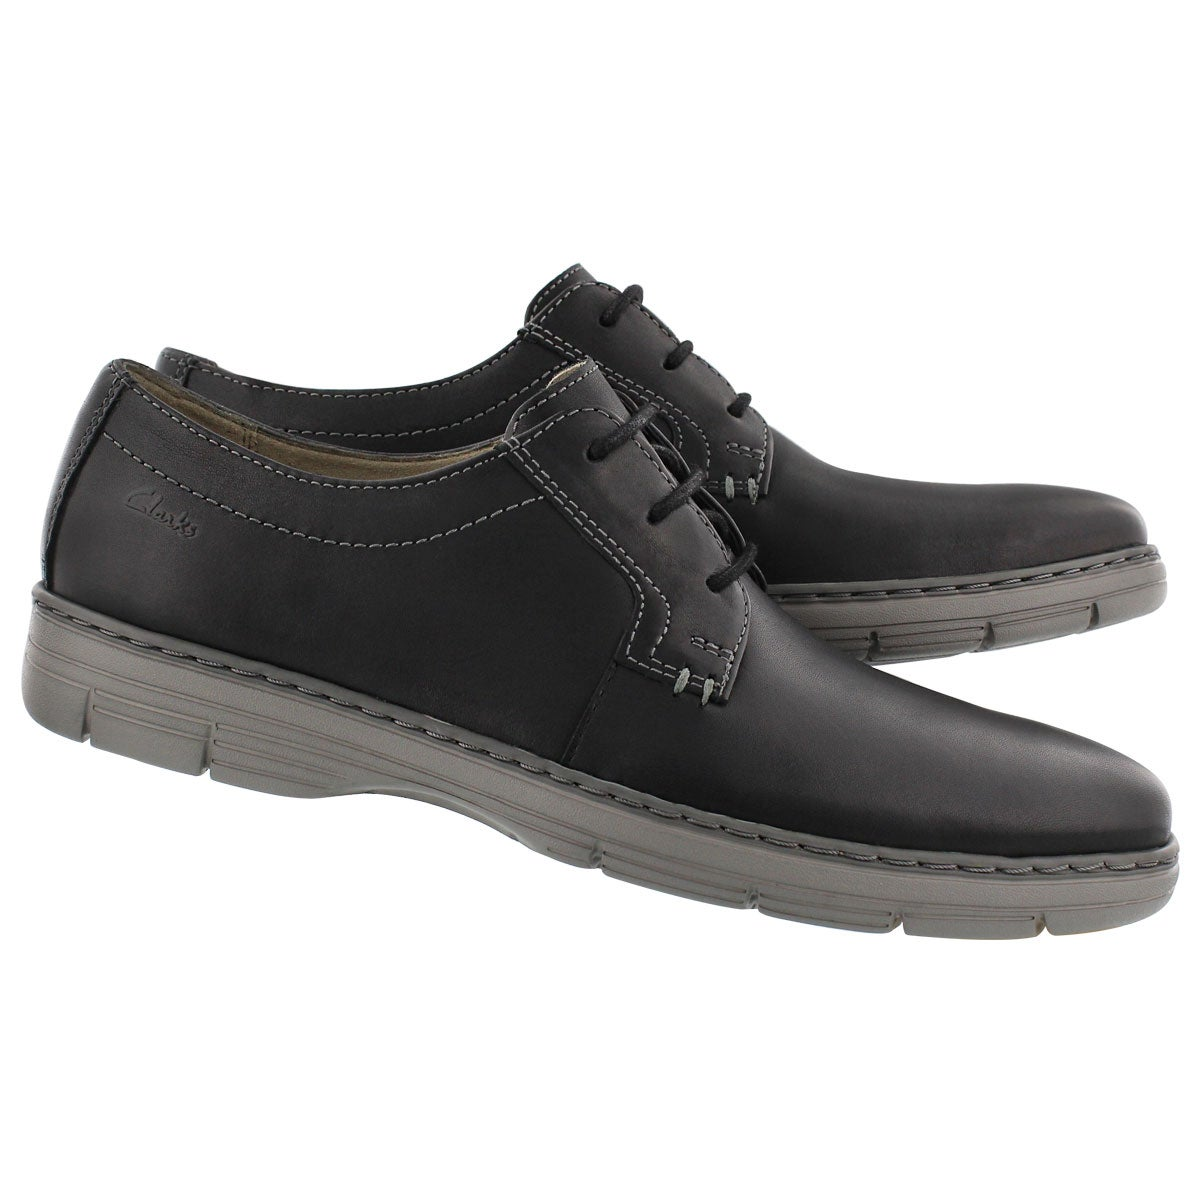 Mns Watts Pace black laceup casua oxford